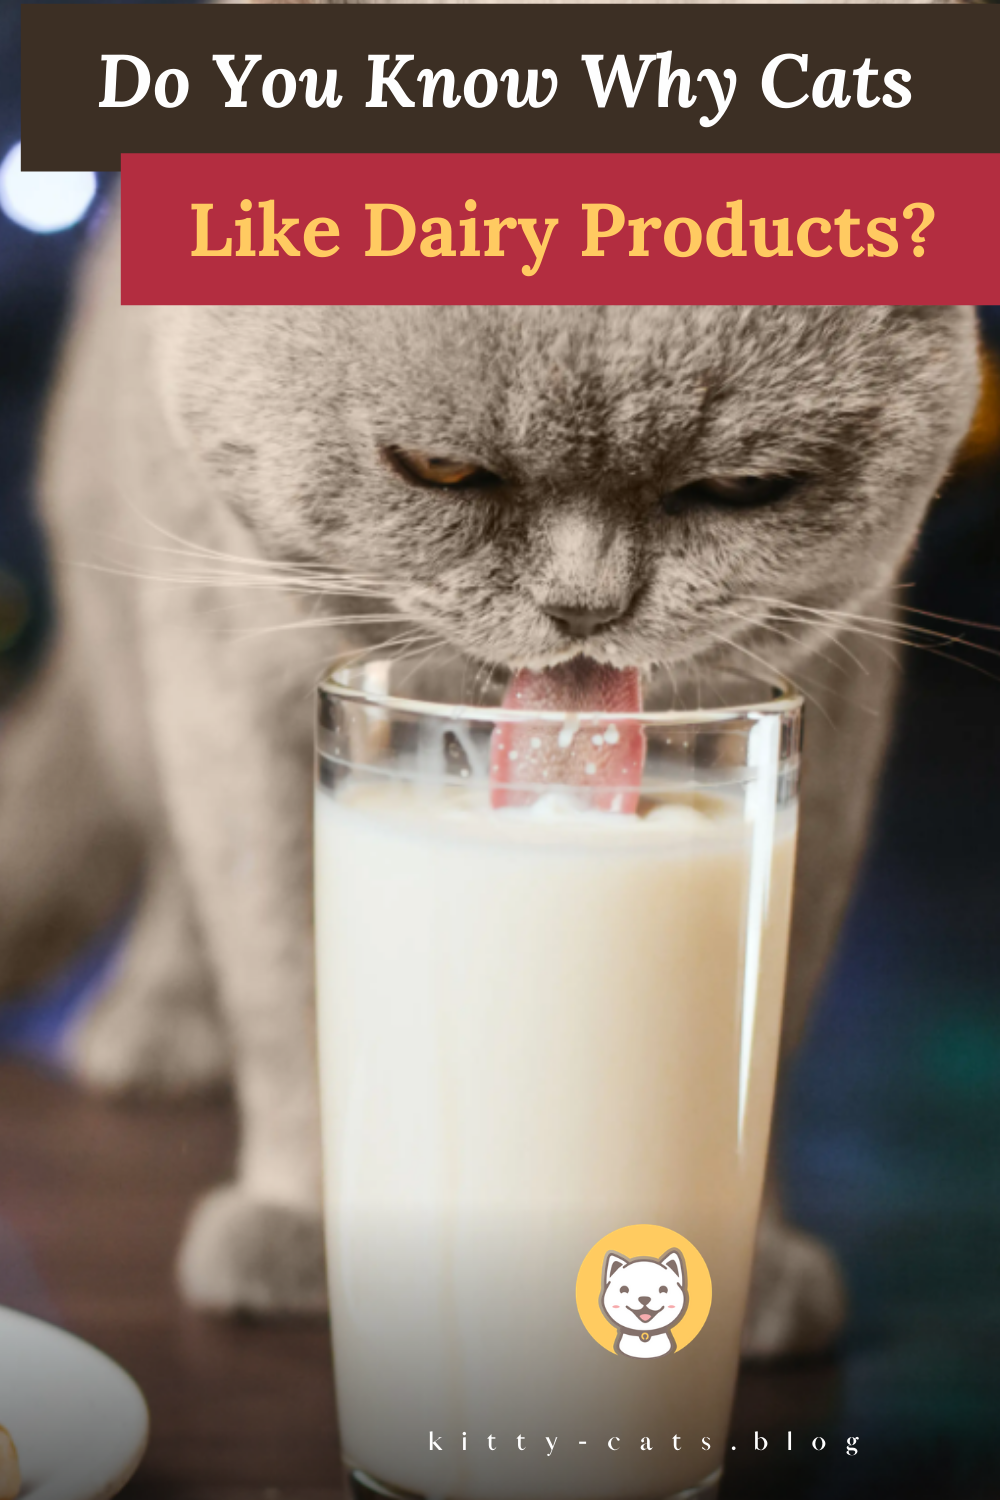 Do You Know Why Cats Like Dairy Products Kitty Cats Blog In 2020 Cat Health Care Cat Nutrition Animal Nutrition